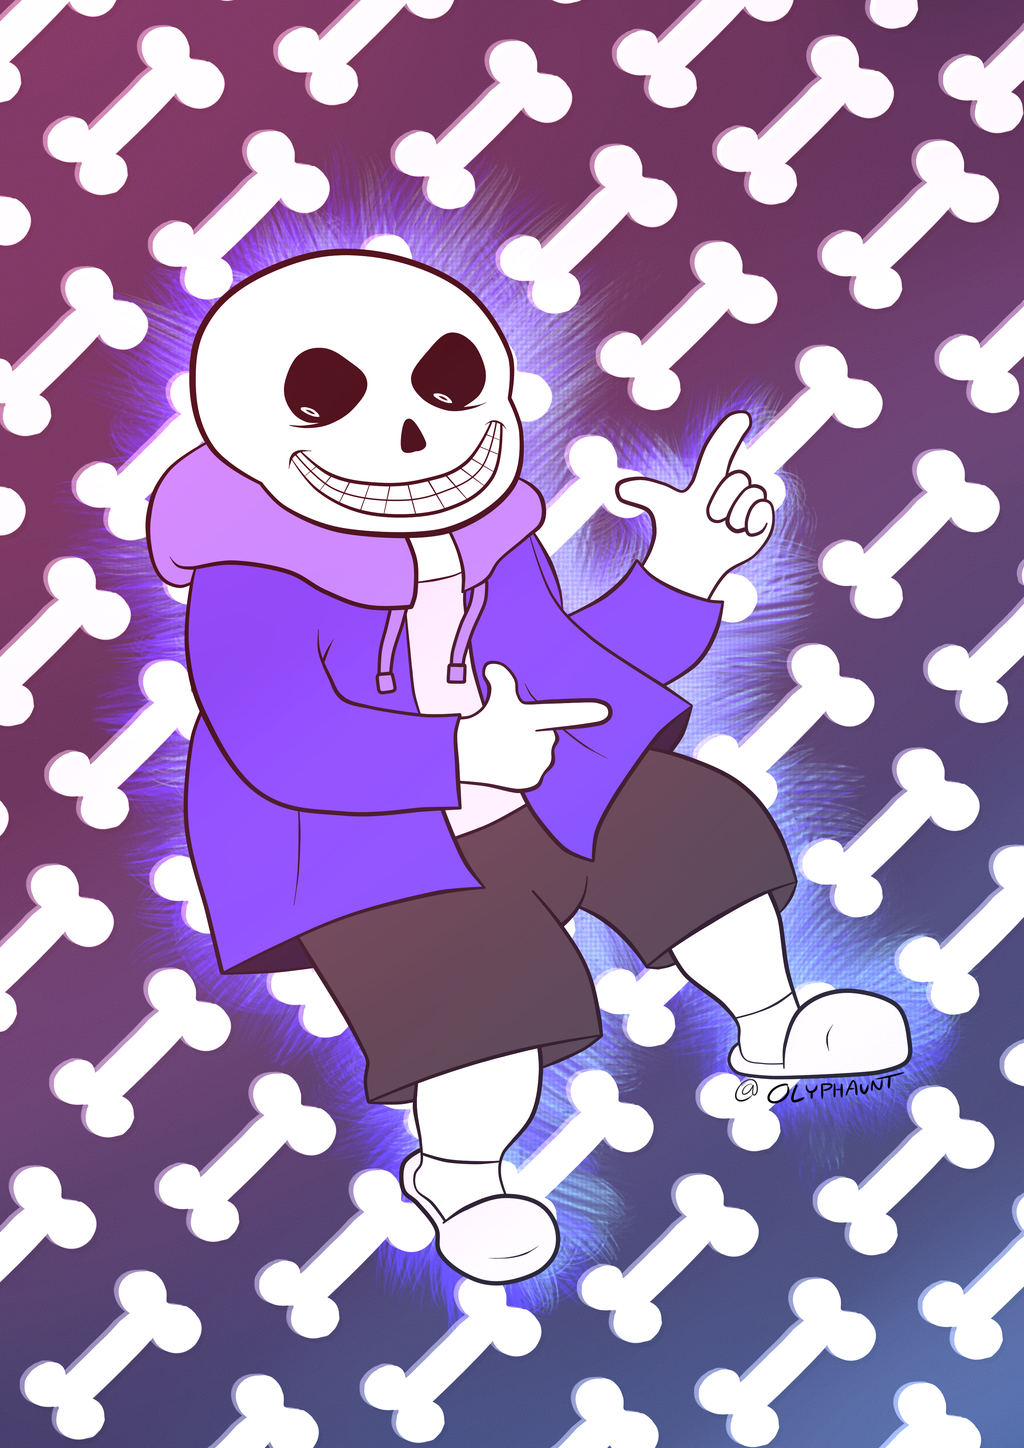 Featured image: SANS